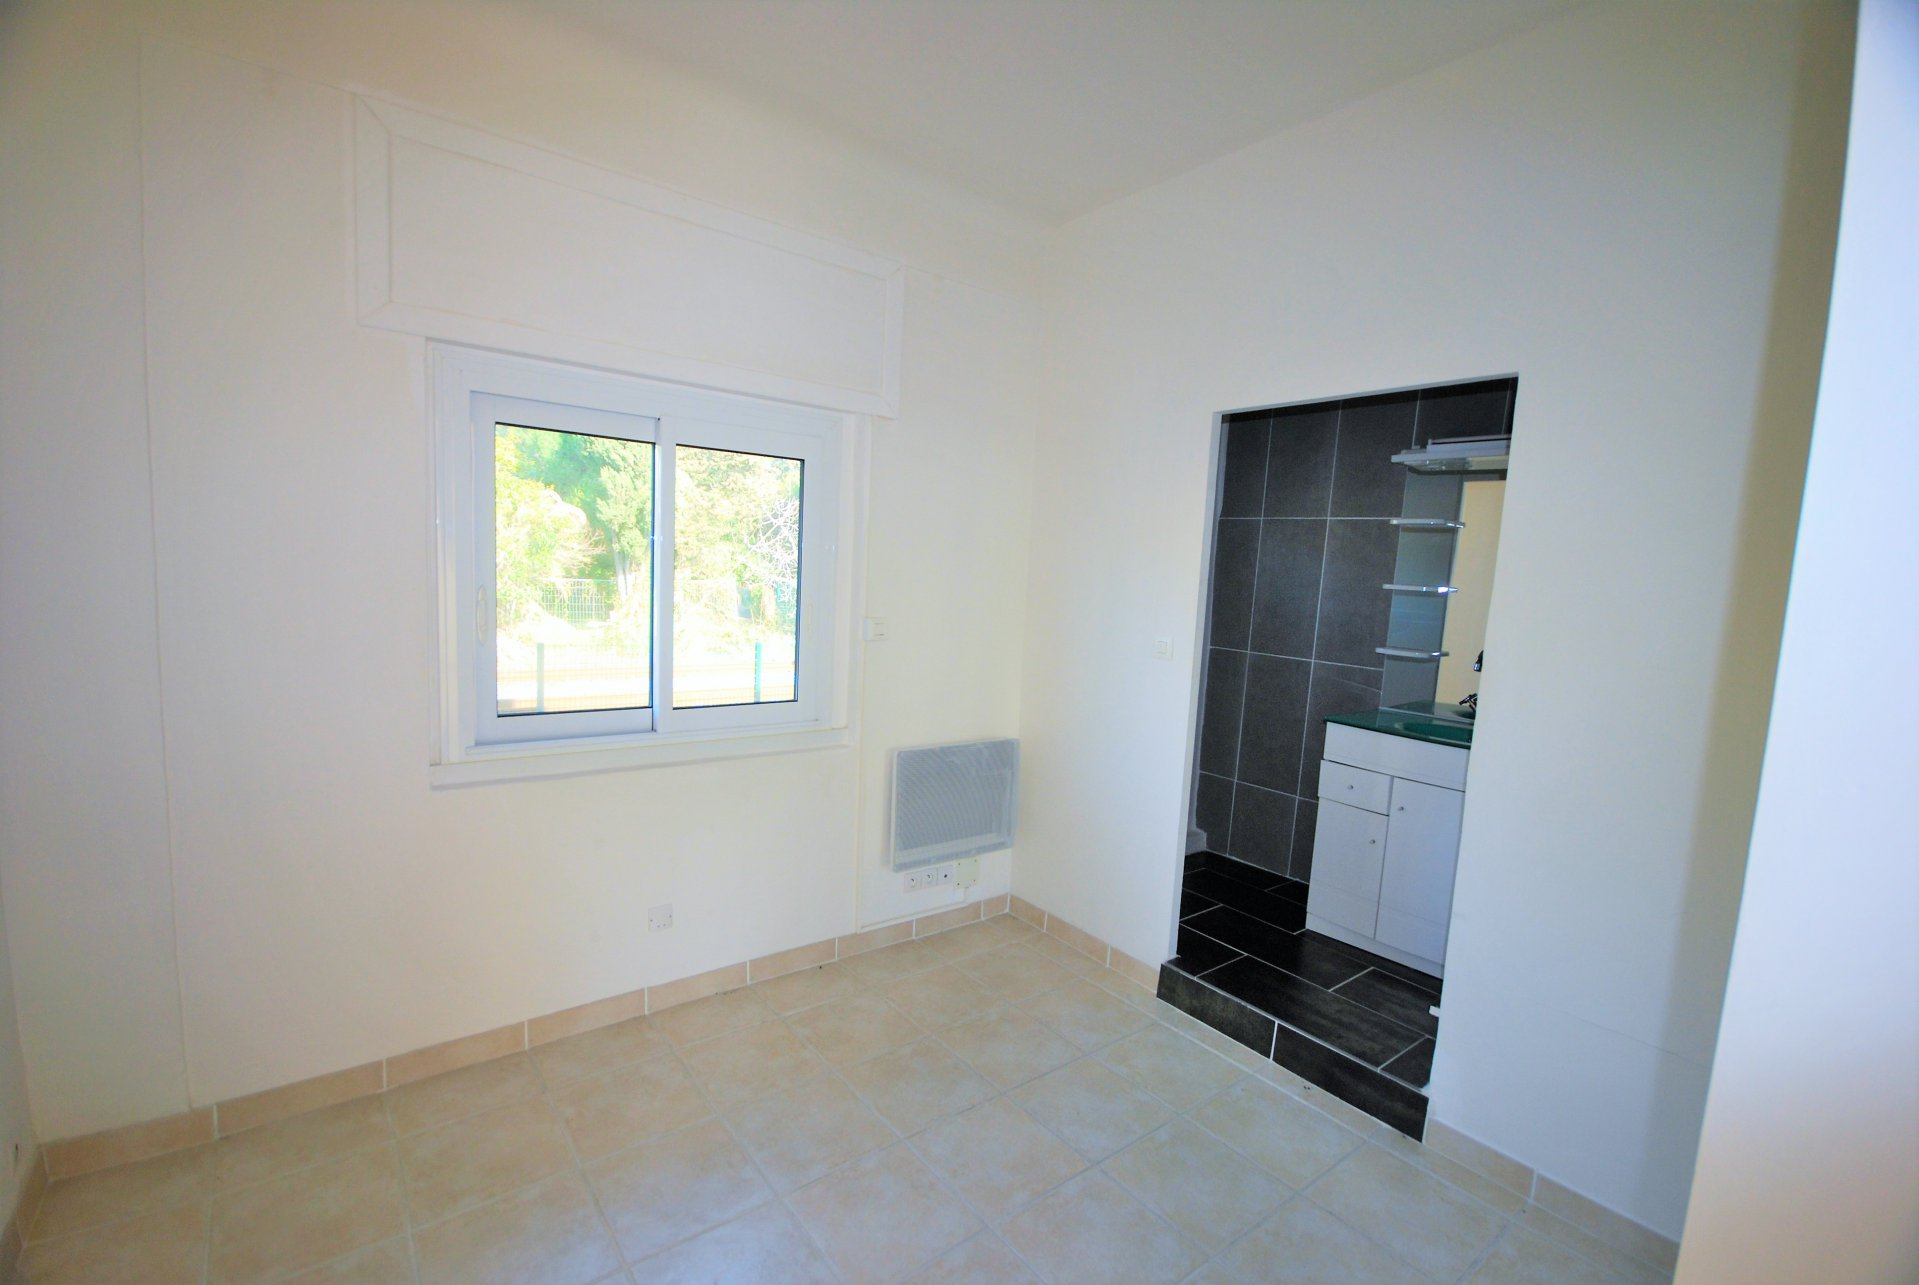 Palm Beach - 1 bedroom renovated appartment